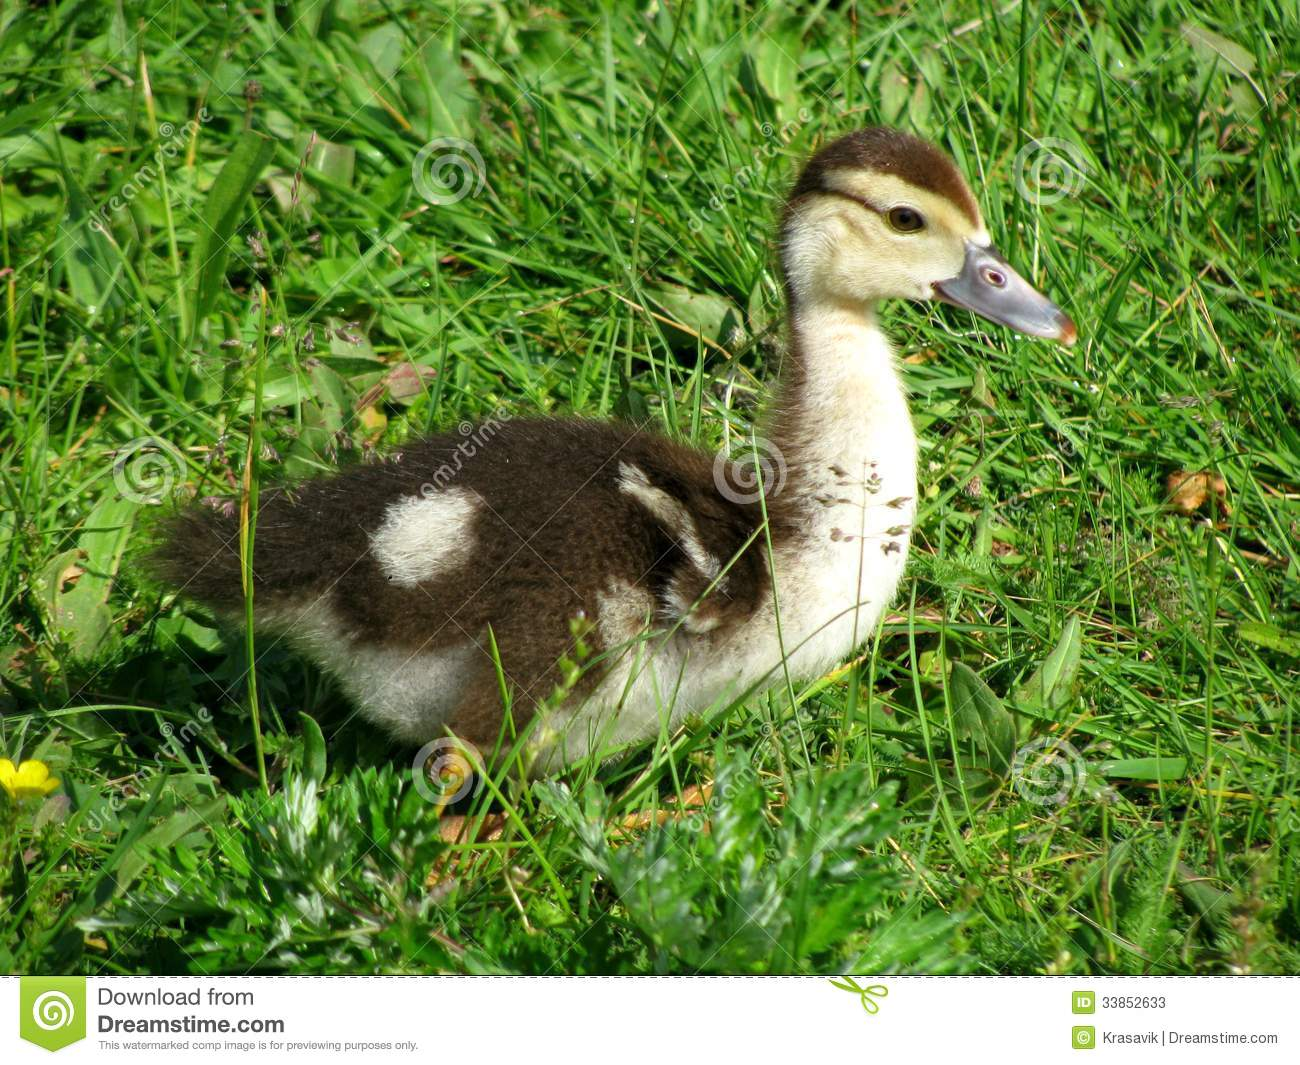 Yellow-brown duckling standing on the grass.